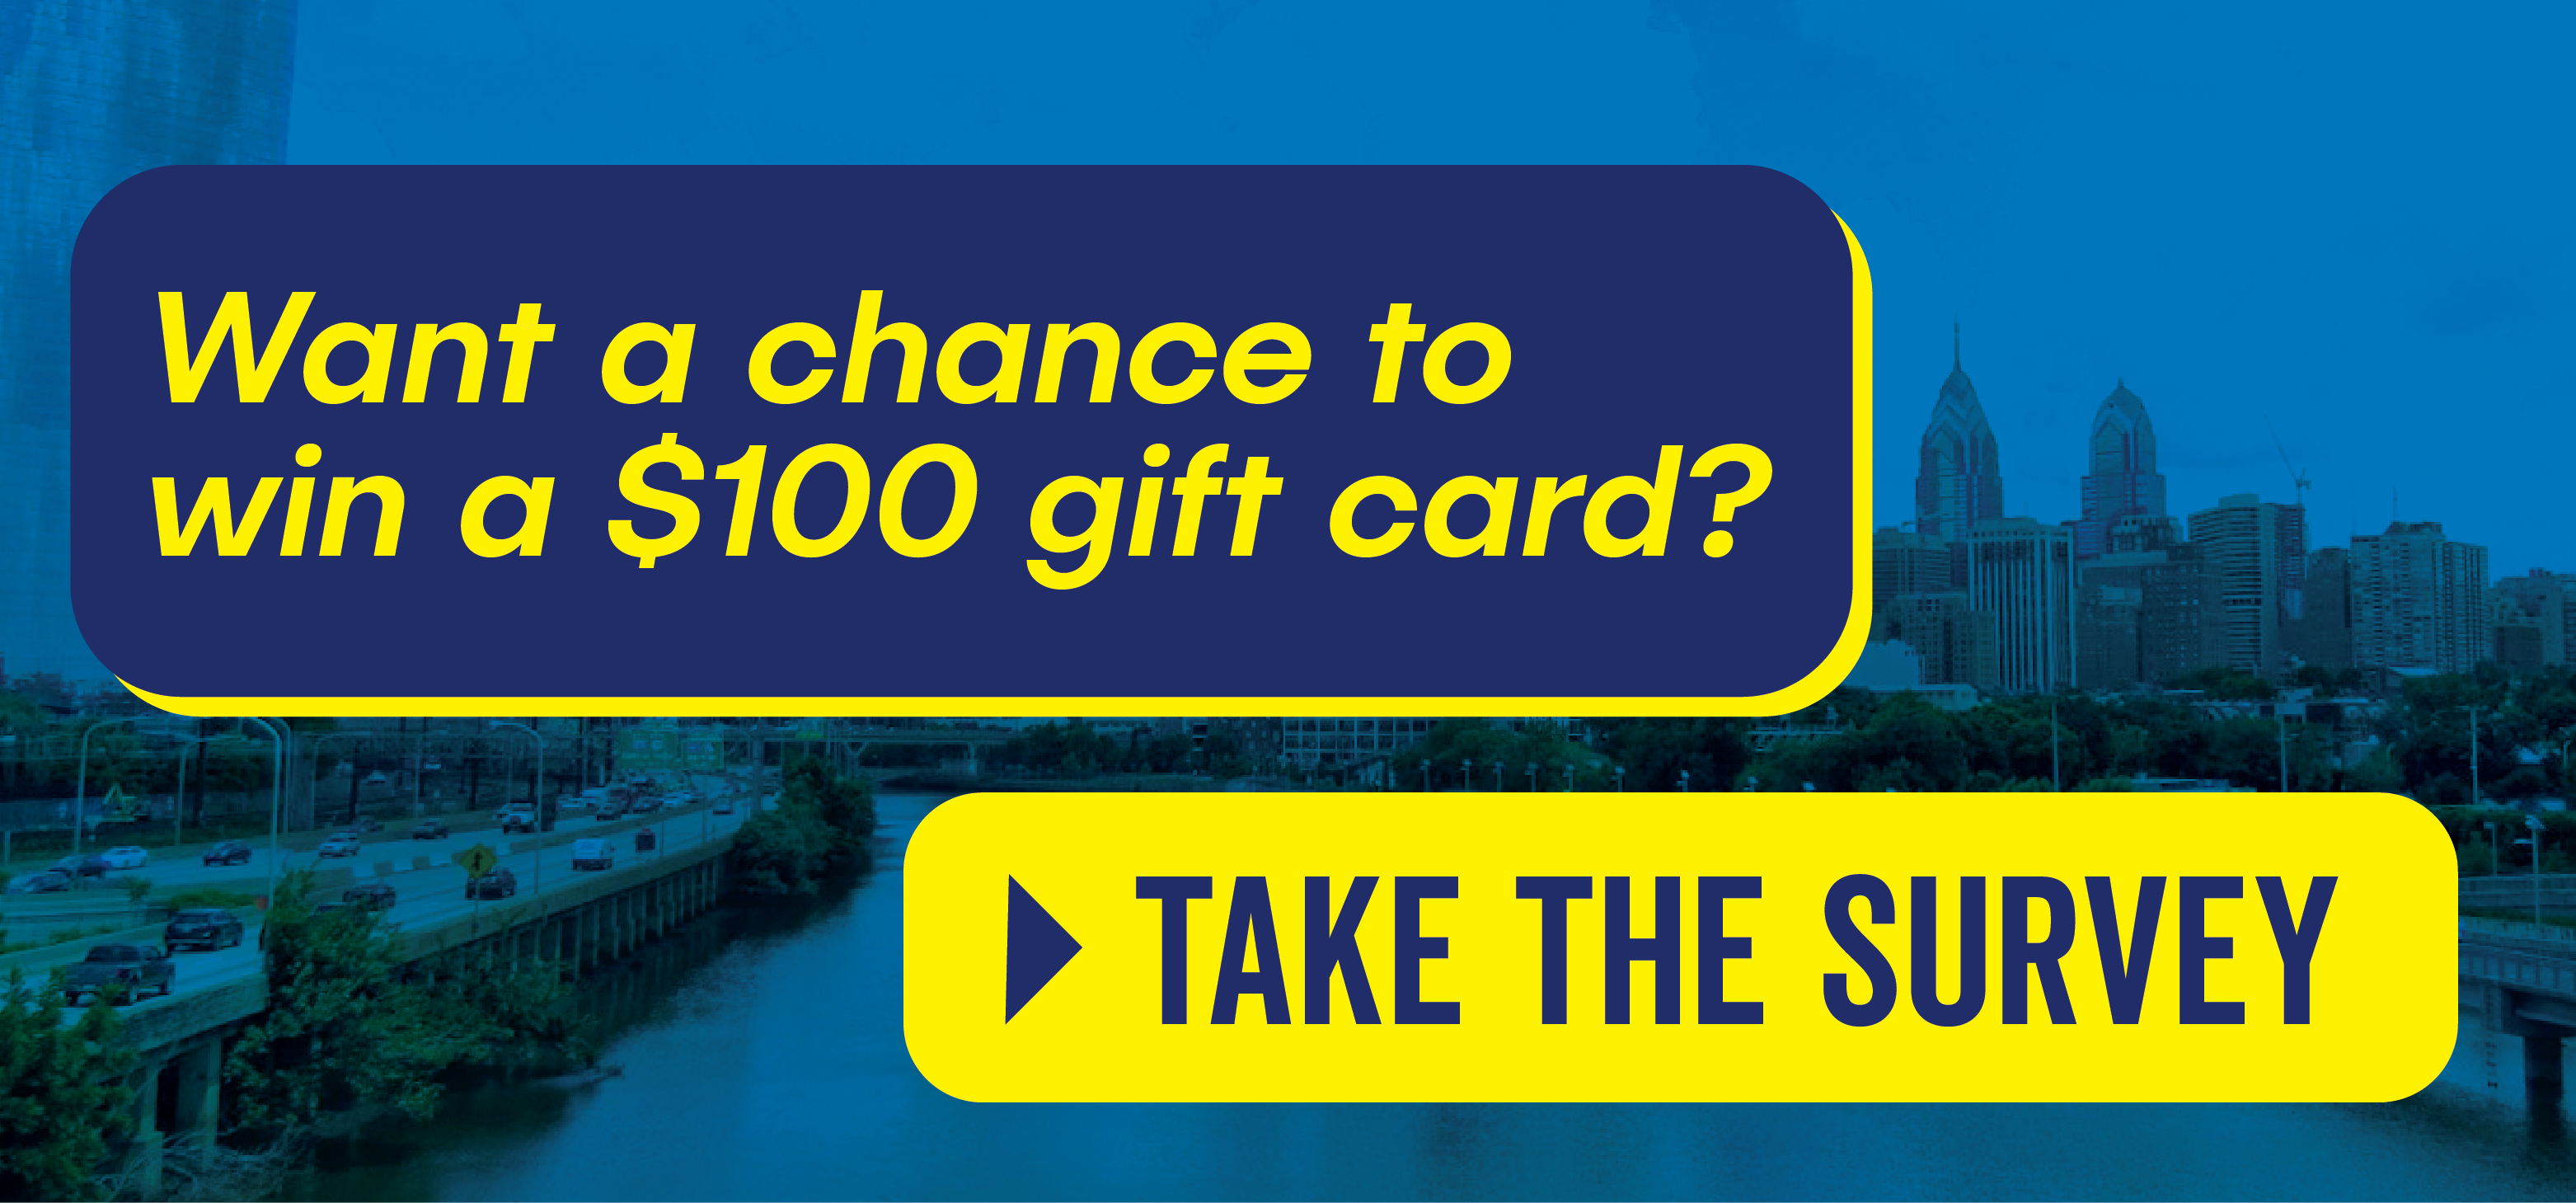 Want a chance to win a $100 gift card? Click here to take the survey!